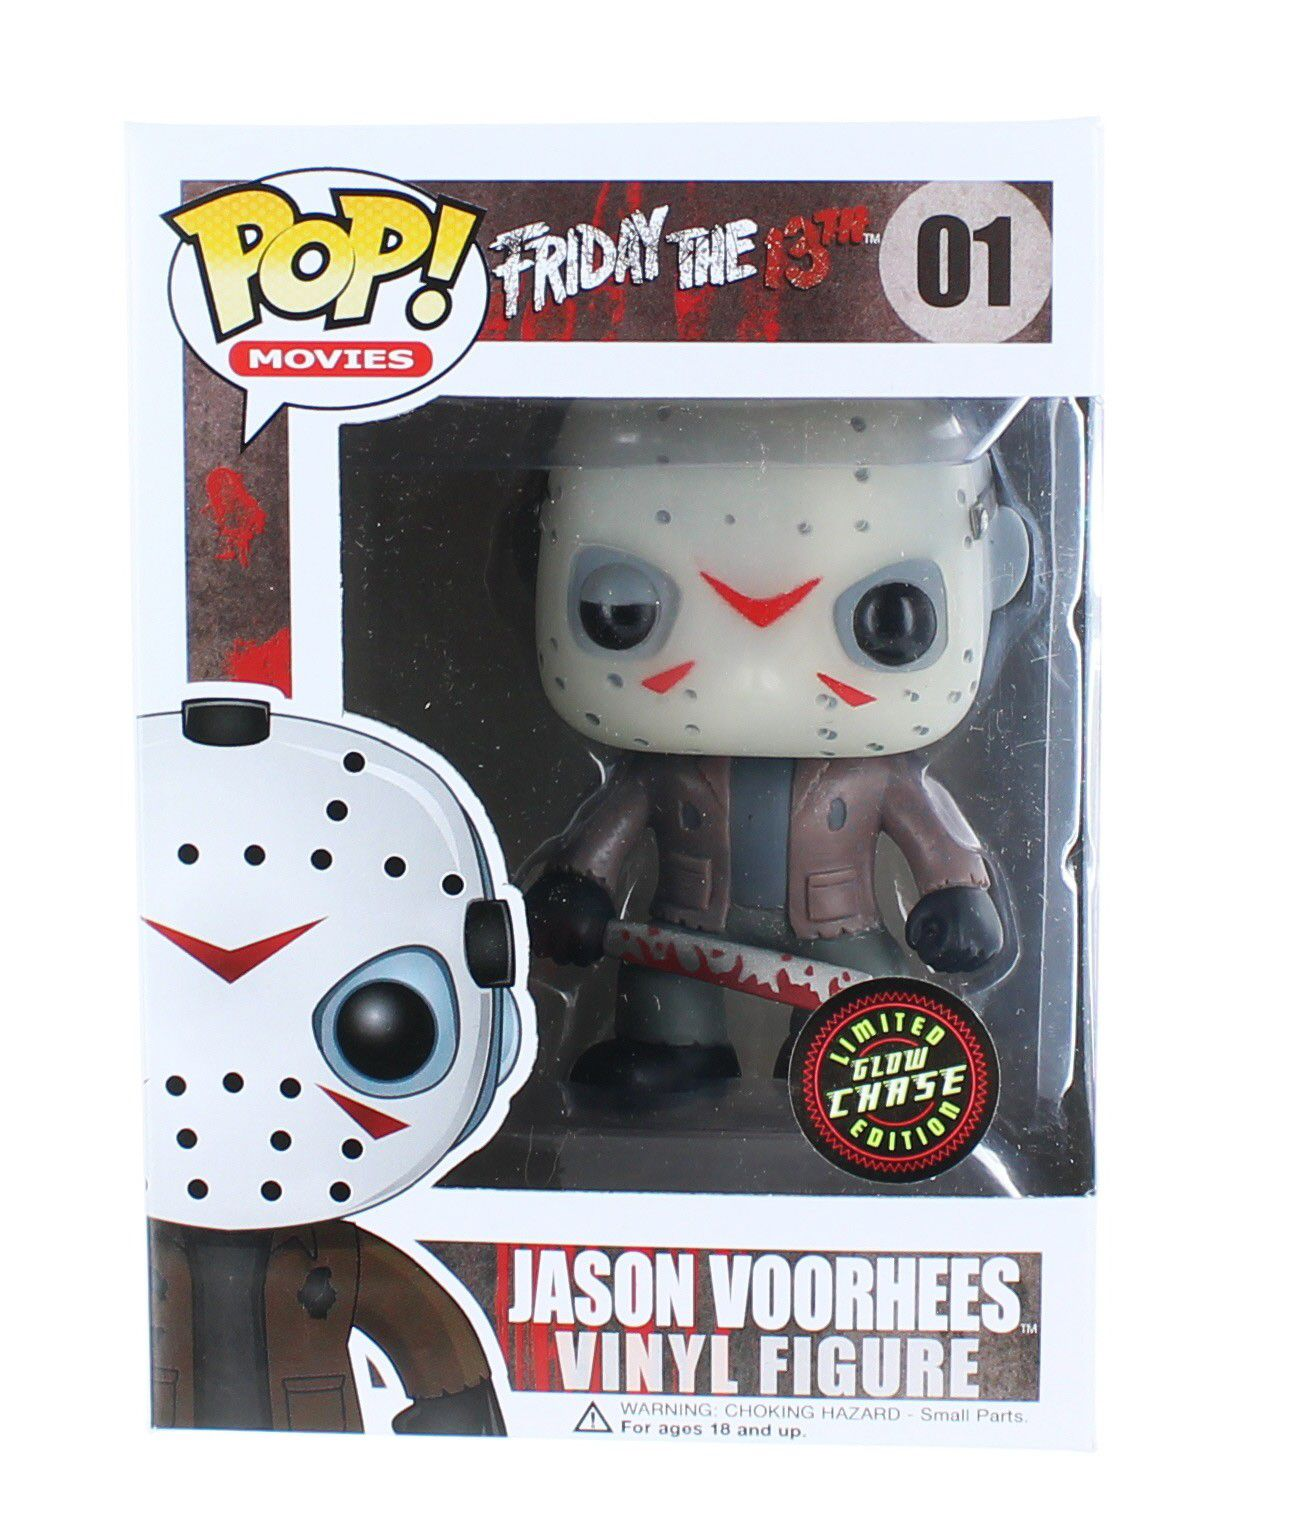 Jason Voorhees #01 - Friday The 13th ( Sexta-feira 13 ) - Funko Pop! Movies Chase